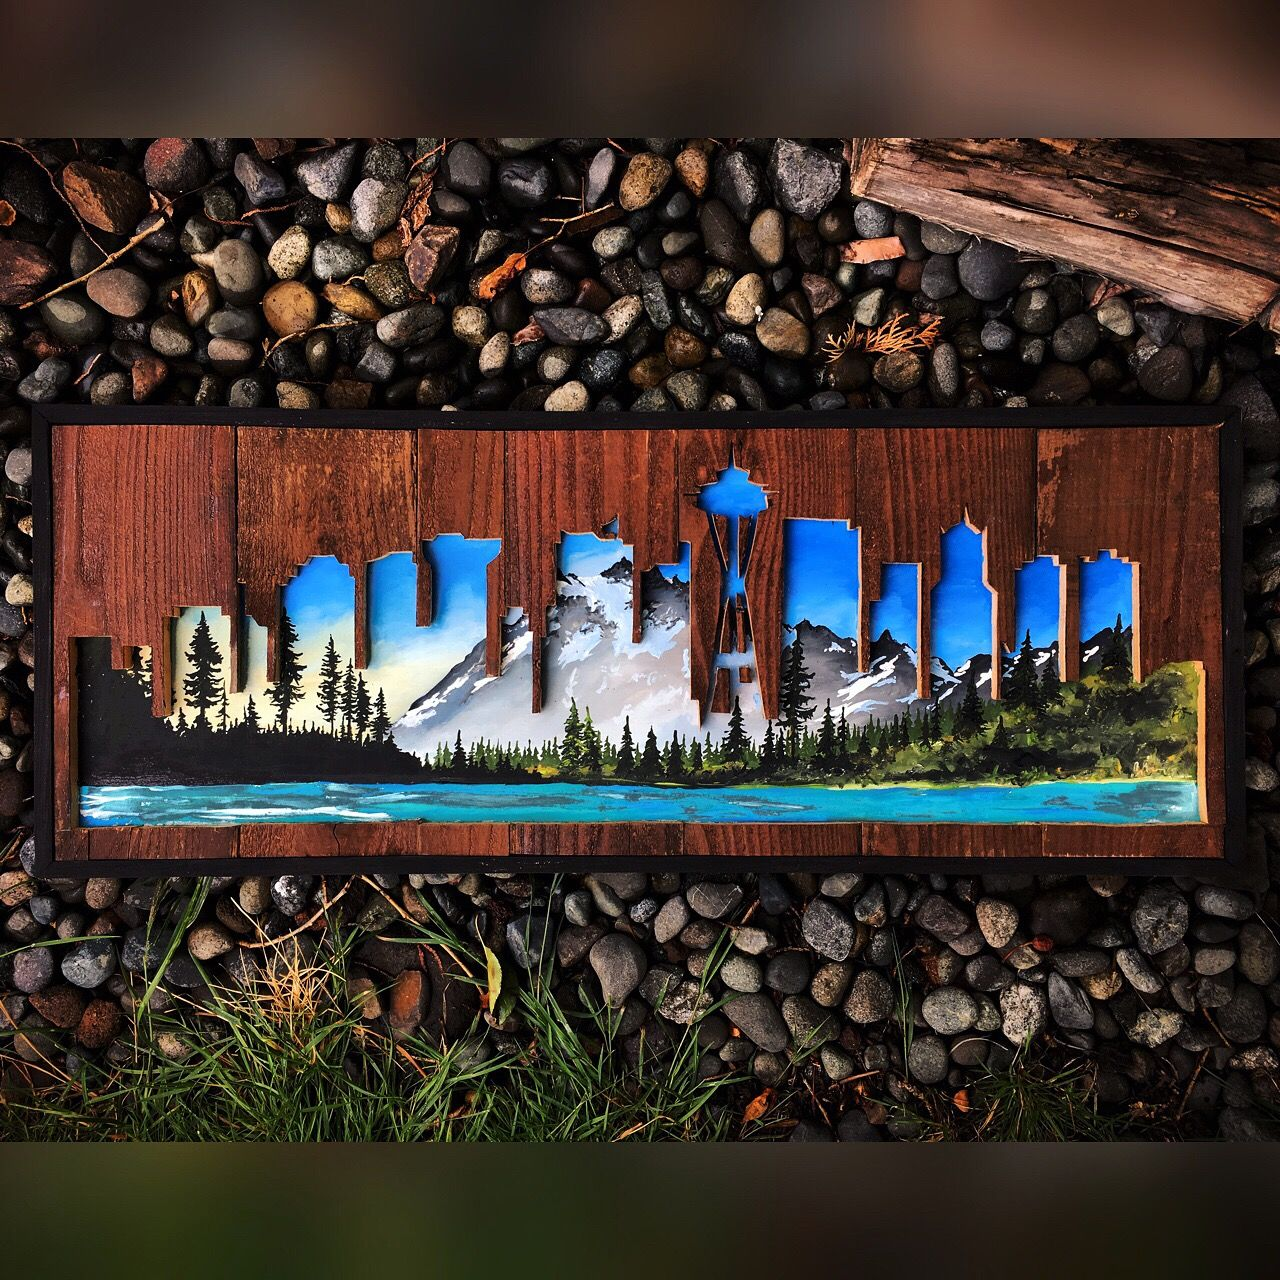 WOODENSENSE (With images) | Diy pallet wall art, Pallet ...